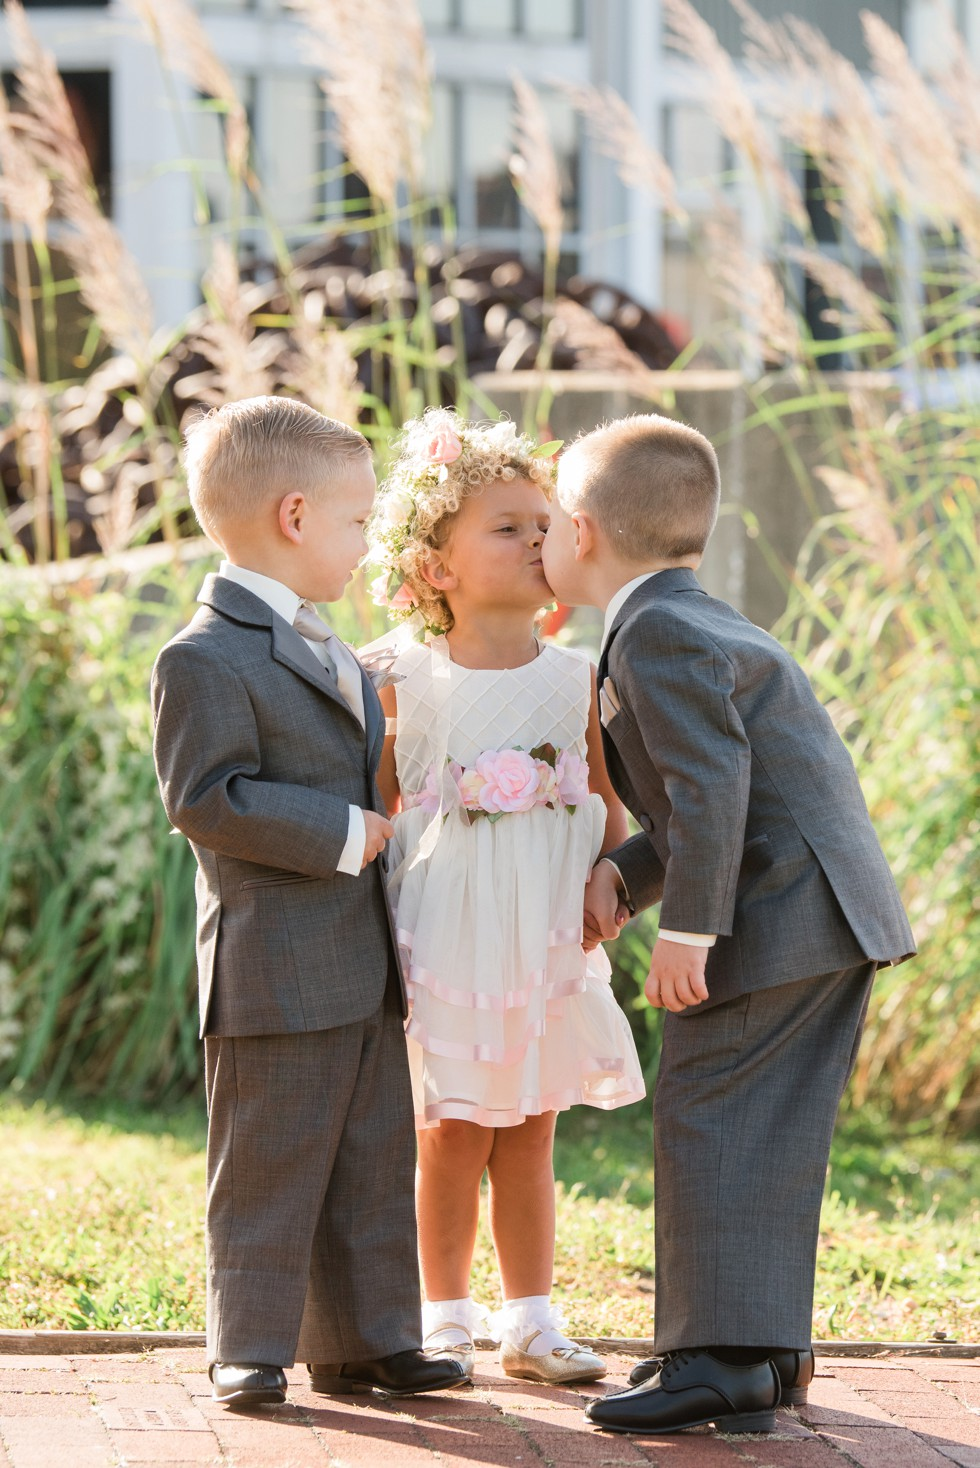 Ring bearer kissing flower girl in the sunshine and grey suits